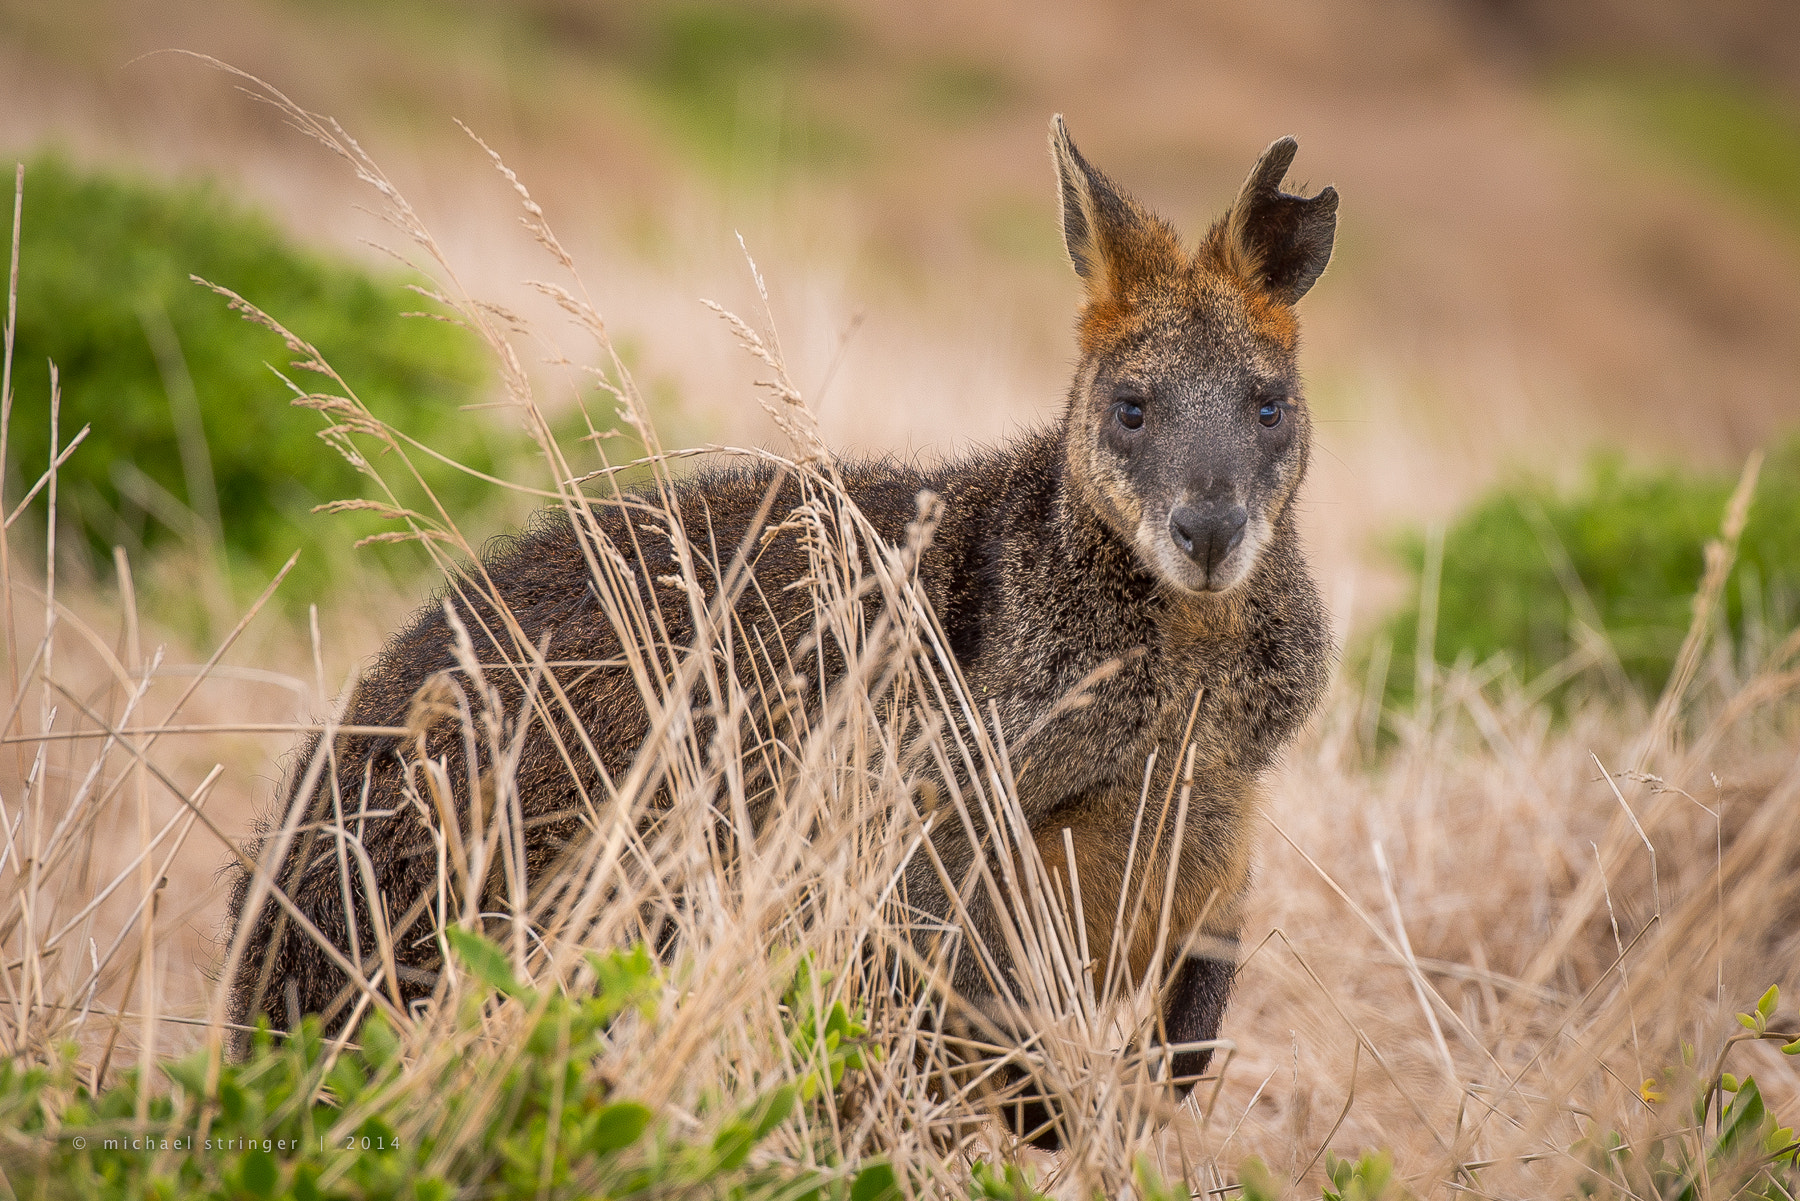 Photograph Black Wallaby by Michael Stringer on 500px